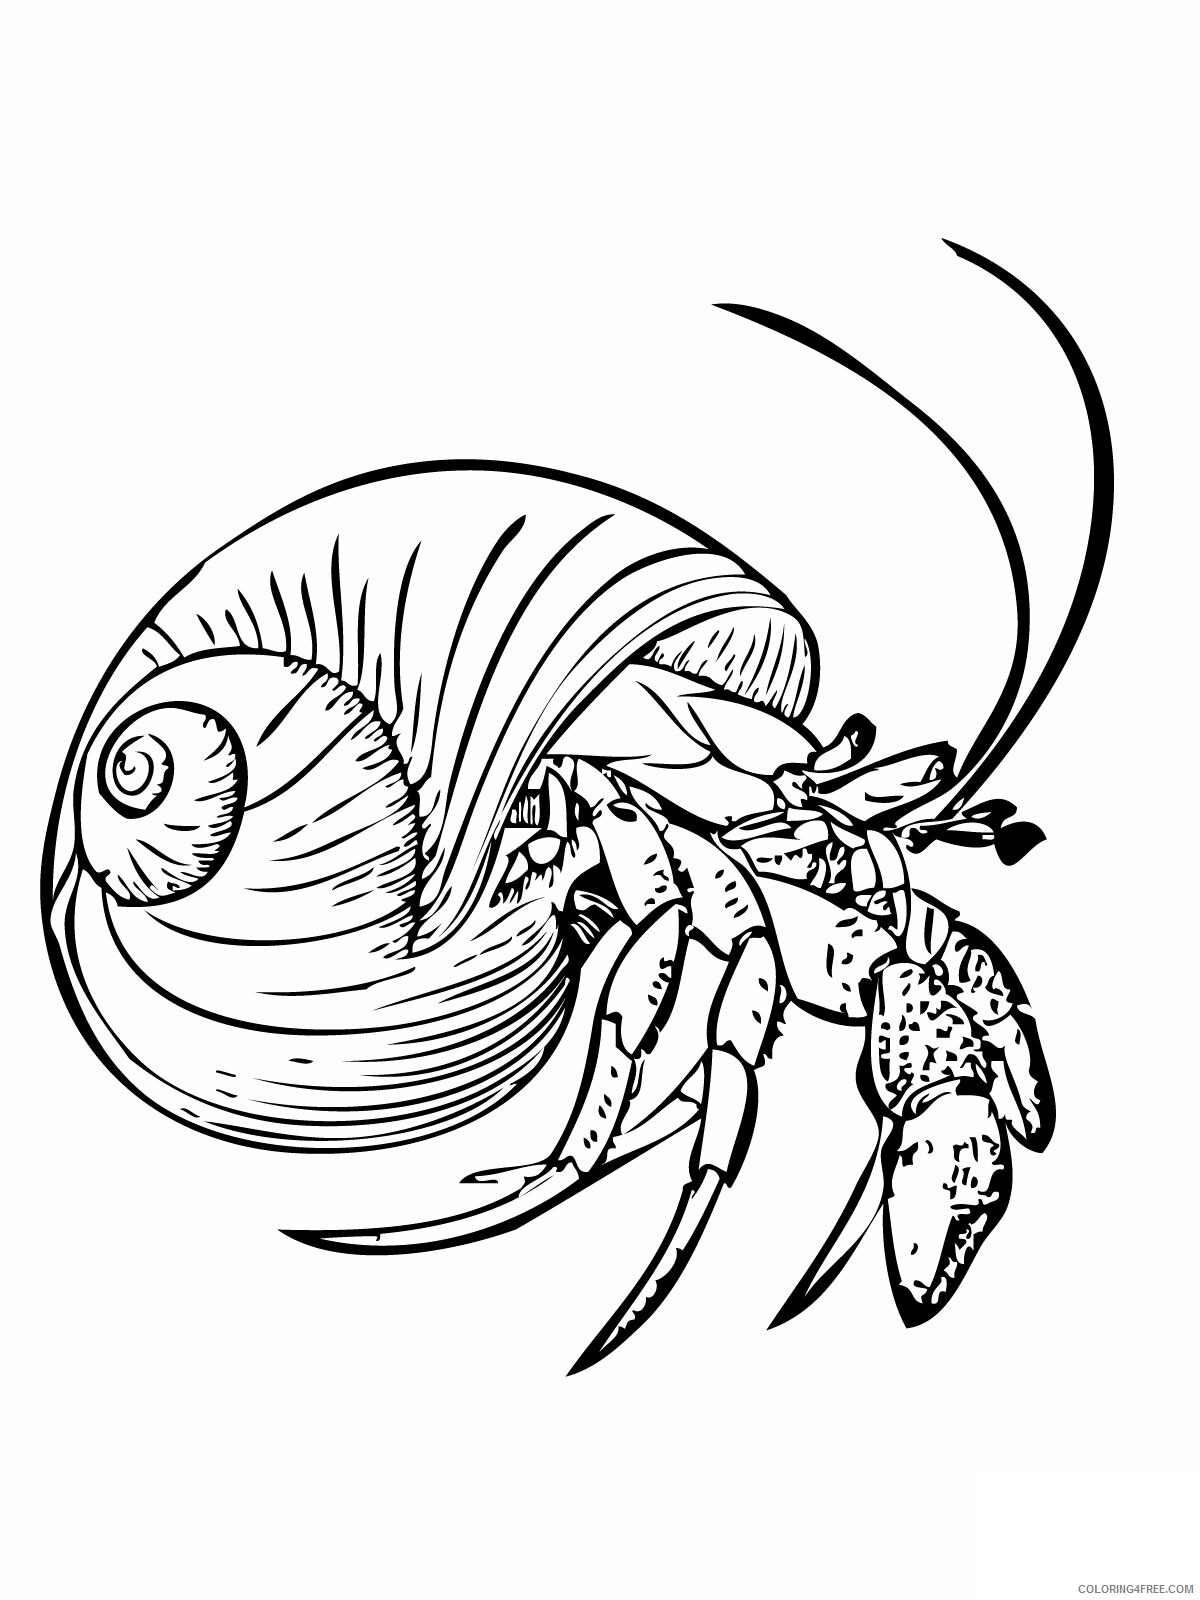 Hermit Crab Coloring Pages Animal Printable Sheets Hermit Crab 2021 2654 Coloring4free